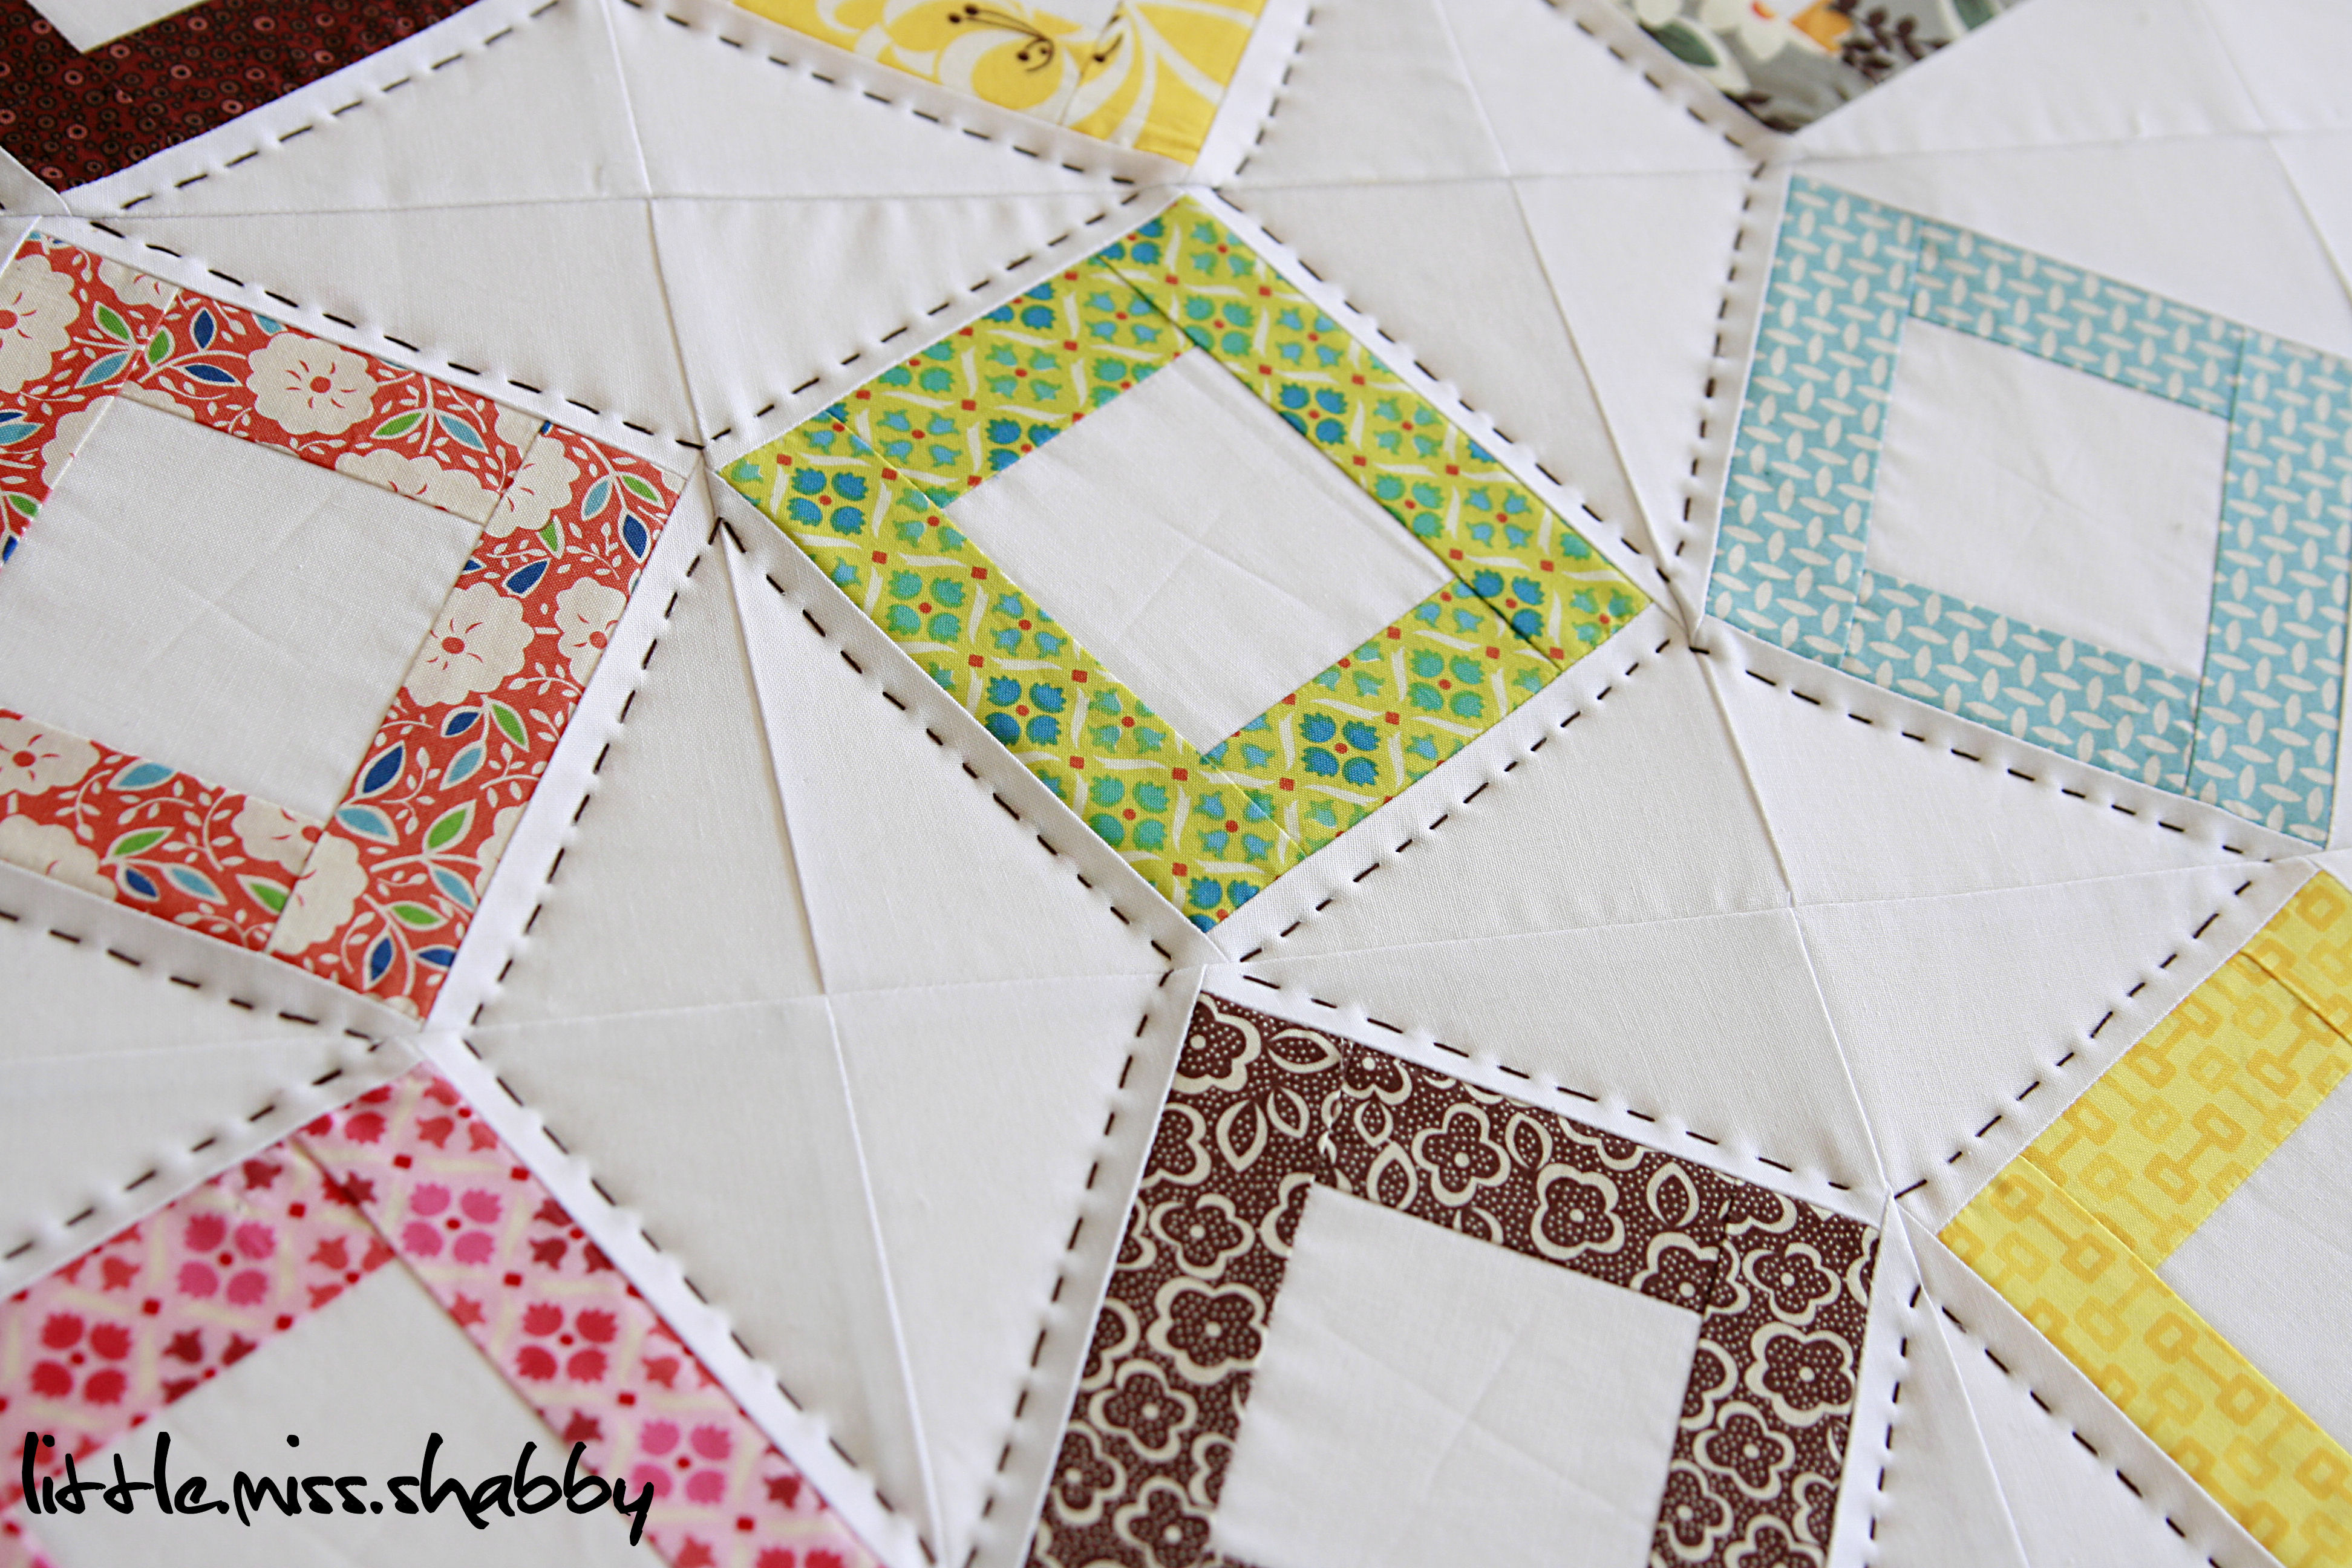 Marathon Quilting Session – Coriander Quilts